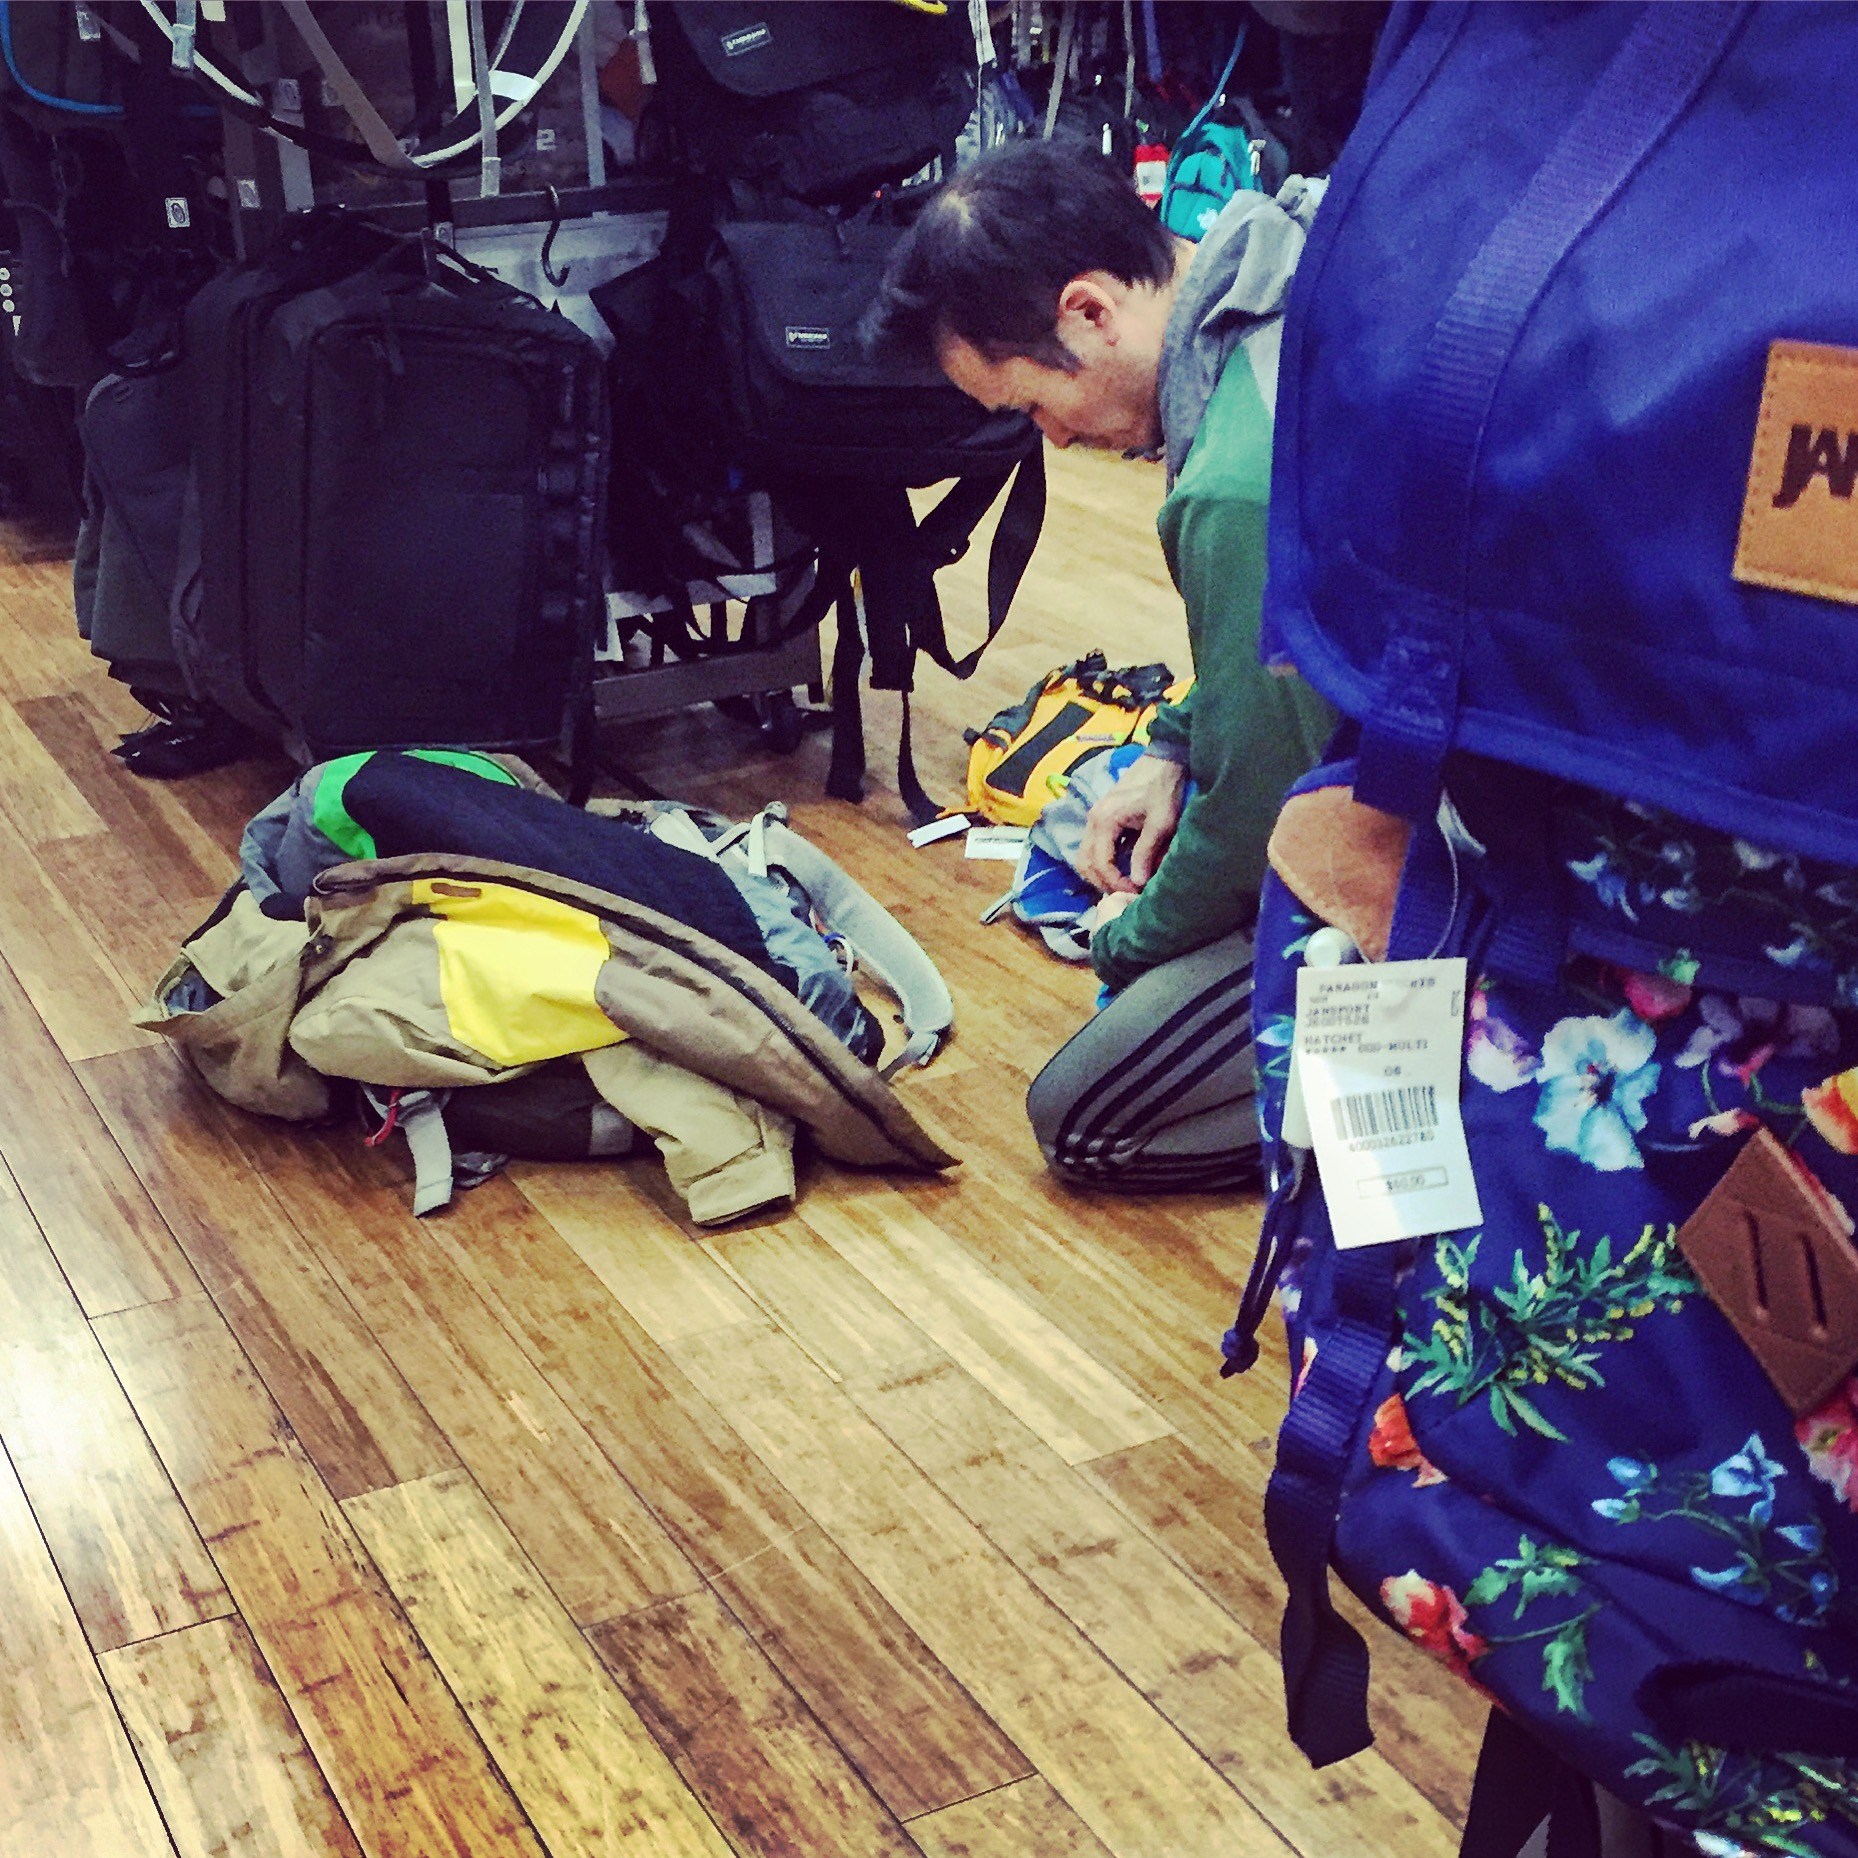 Another customer tests the backpacks.